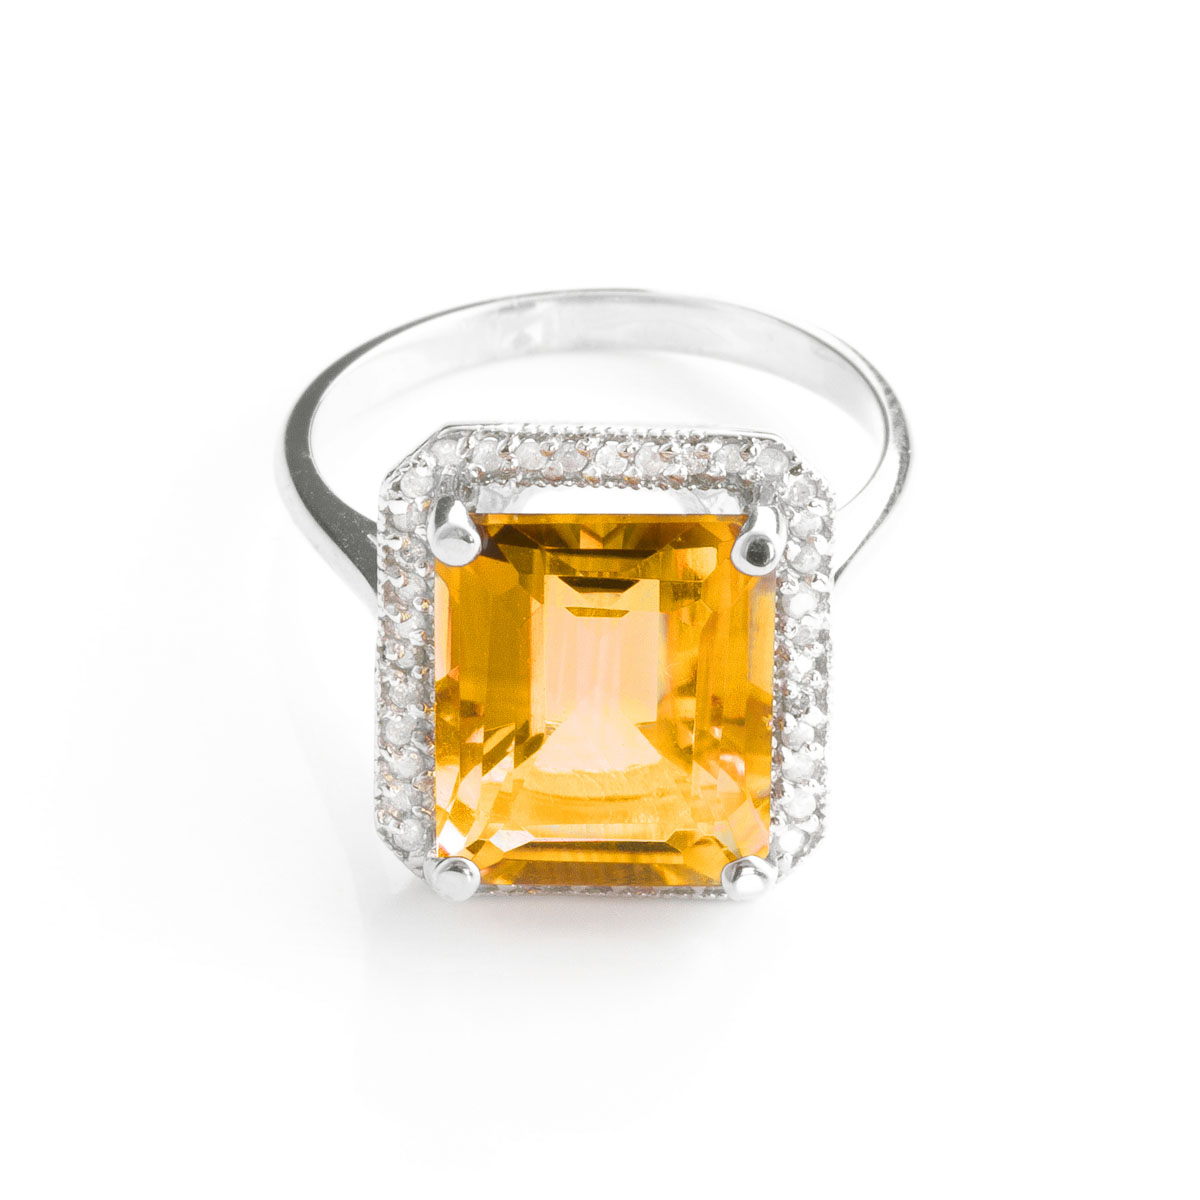 Citrine Halo Ring 5.8 ctw in 9ct White Gold